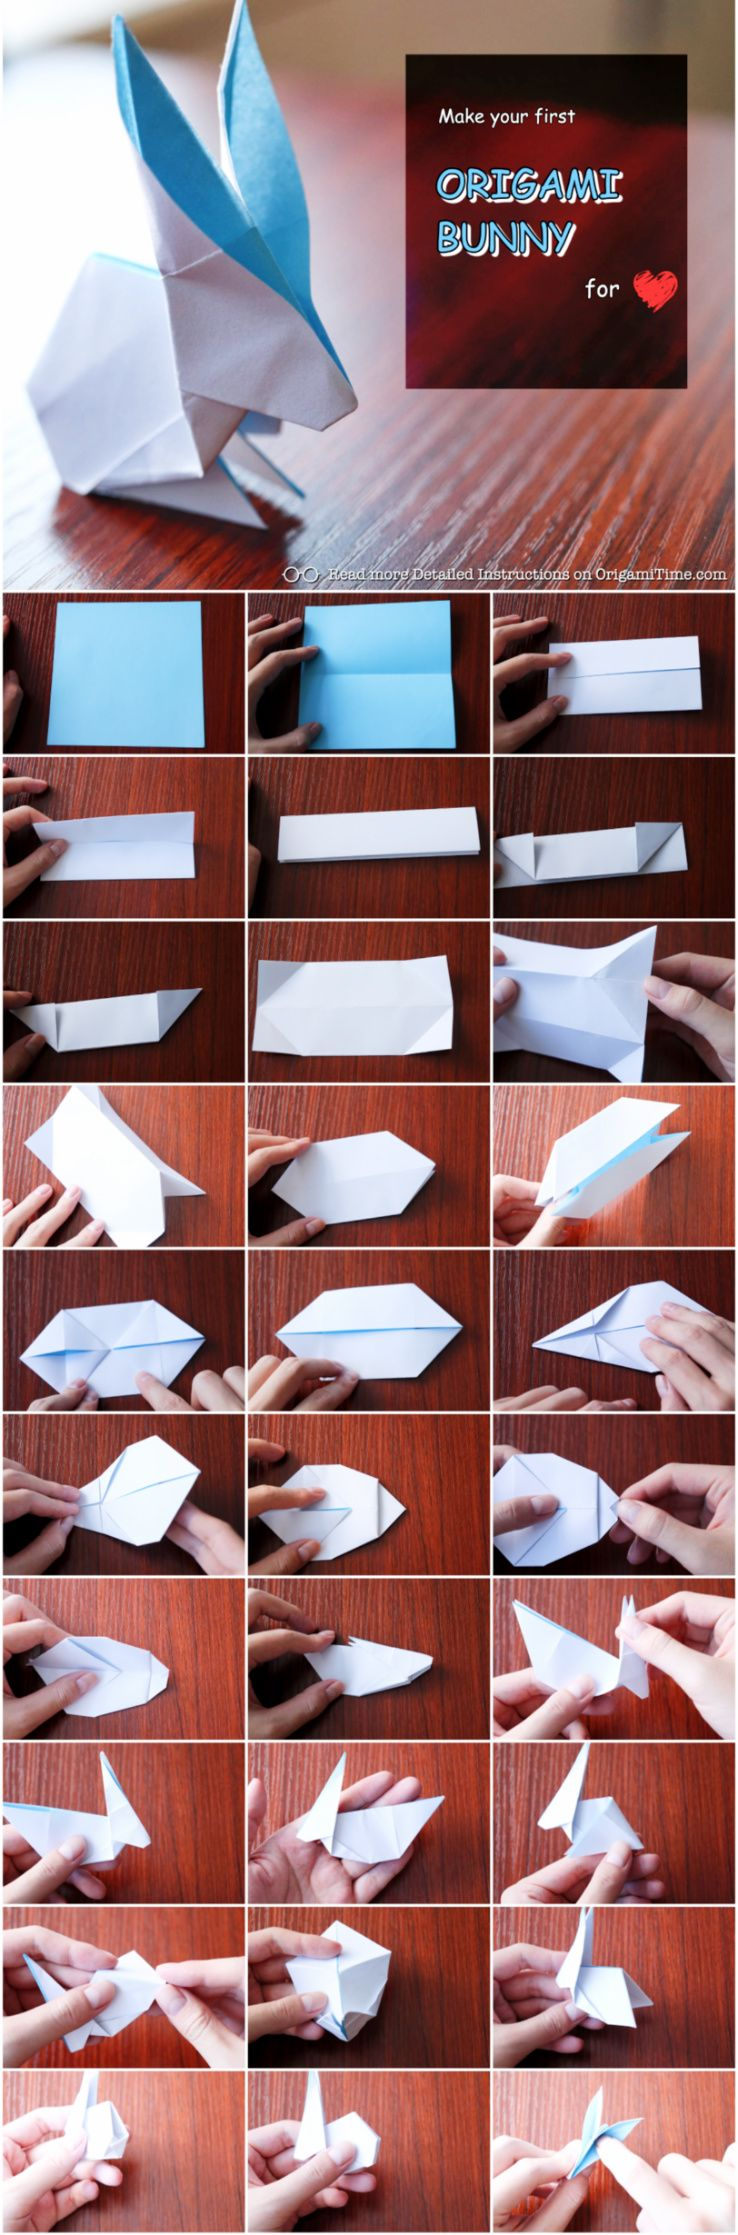 How To Make An Origami Rabbit As Simple As Possible Origami Passo A Passo Coelho